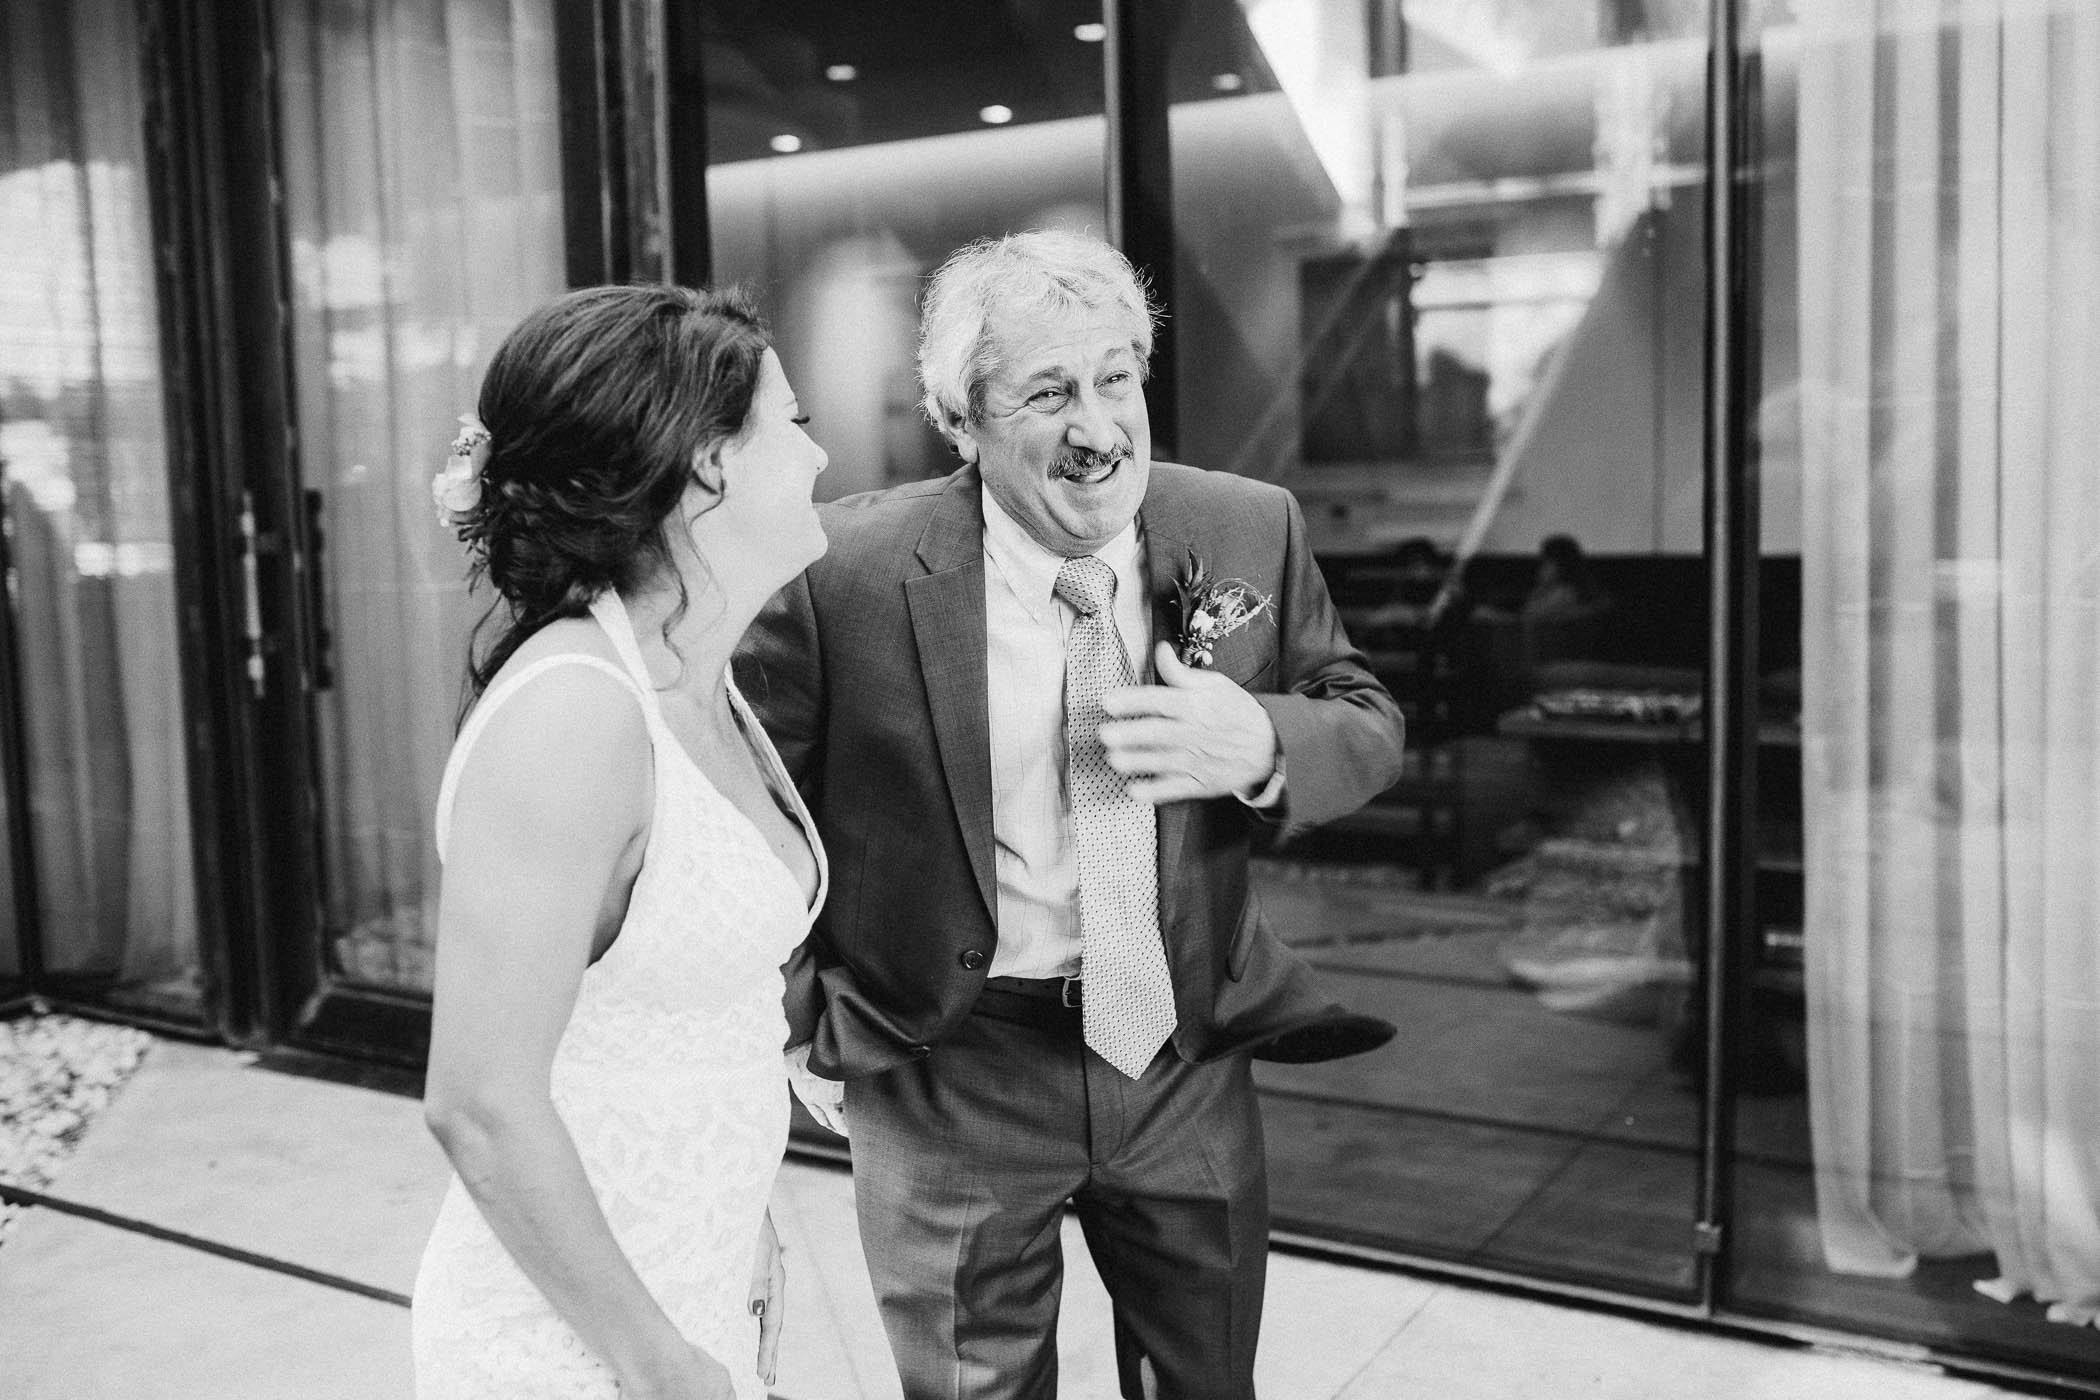 Father and daughter laughing on her wedding day.